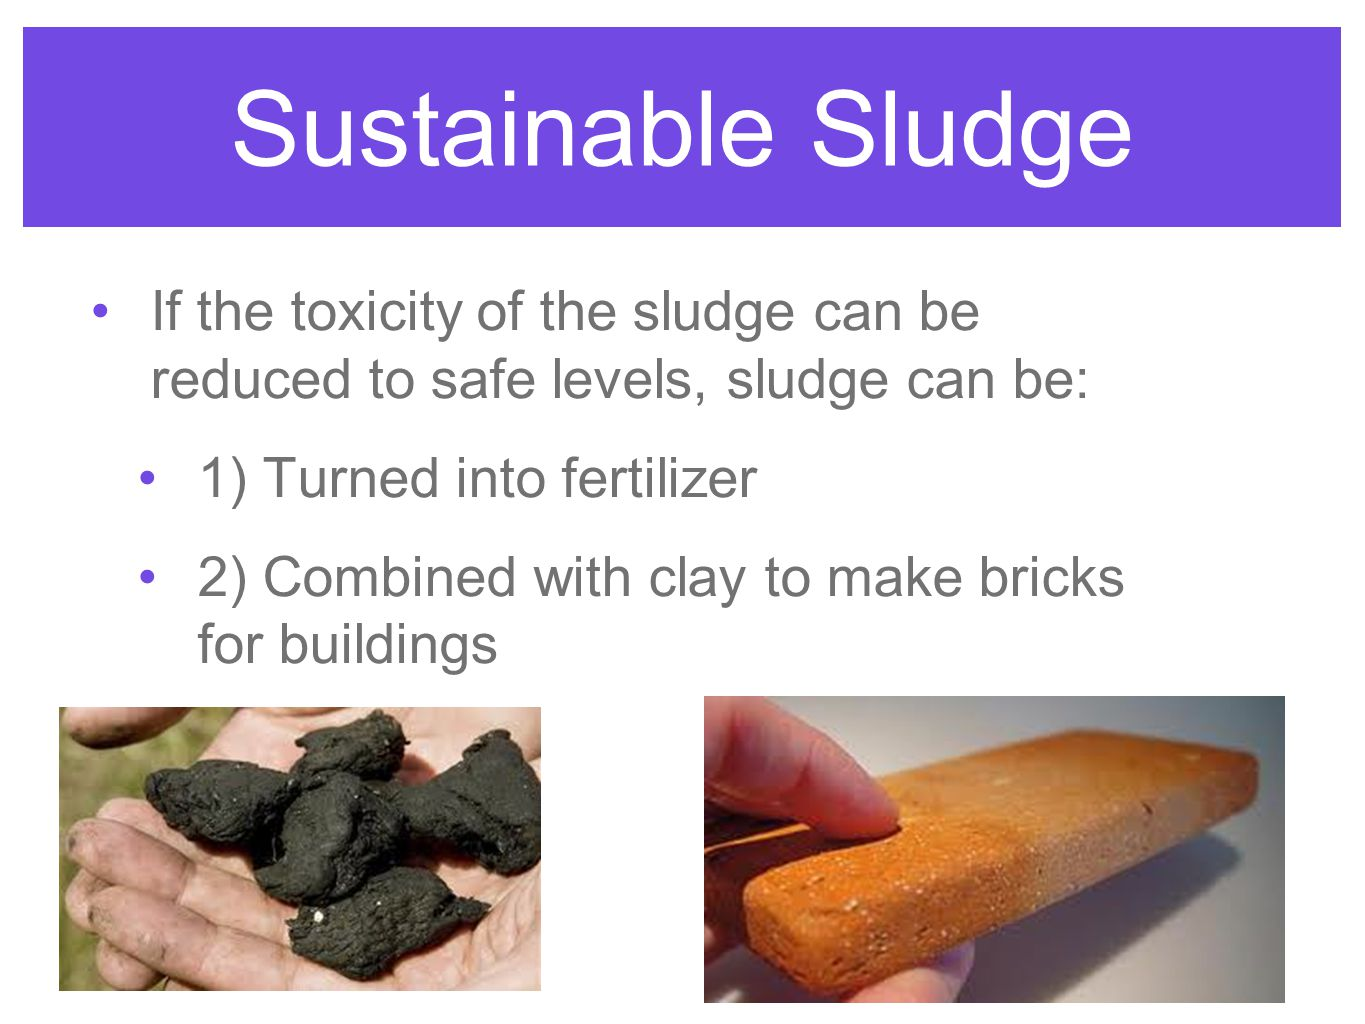 Sustainable Sludge If the toxicity of the sludge can be reduced to safe levels, sludge can be: 1) Turned into fertilizer.